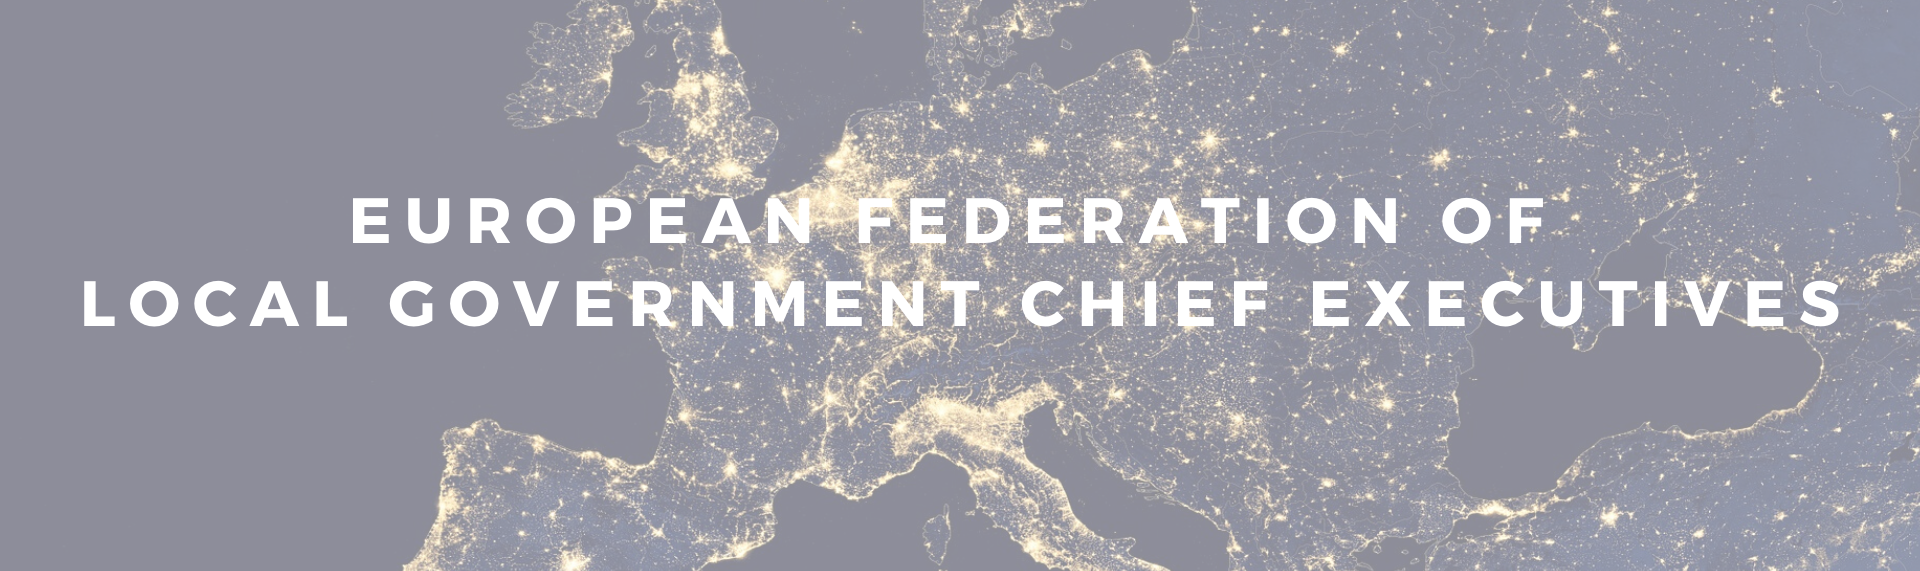 European Federation of Local Government Chief Executives